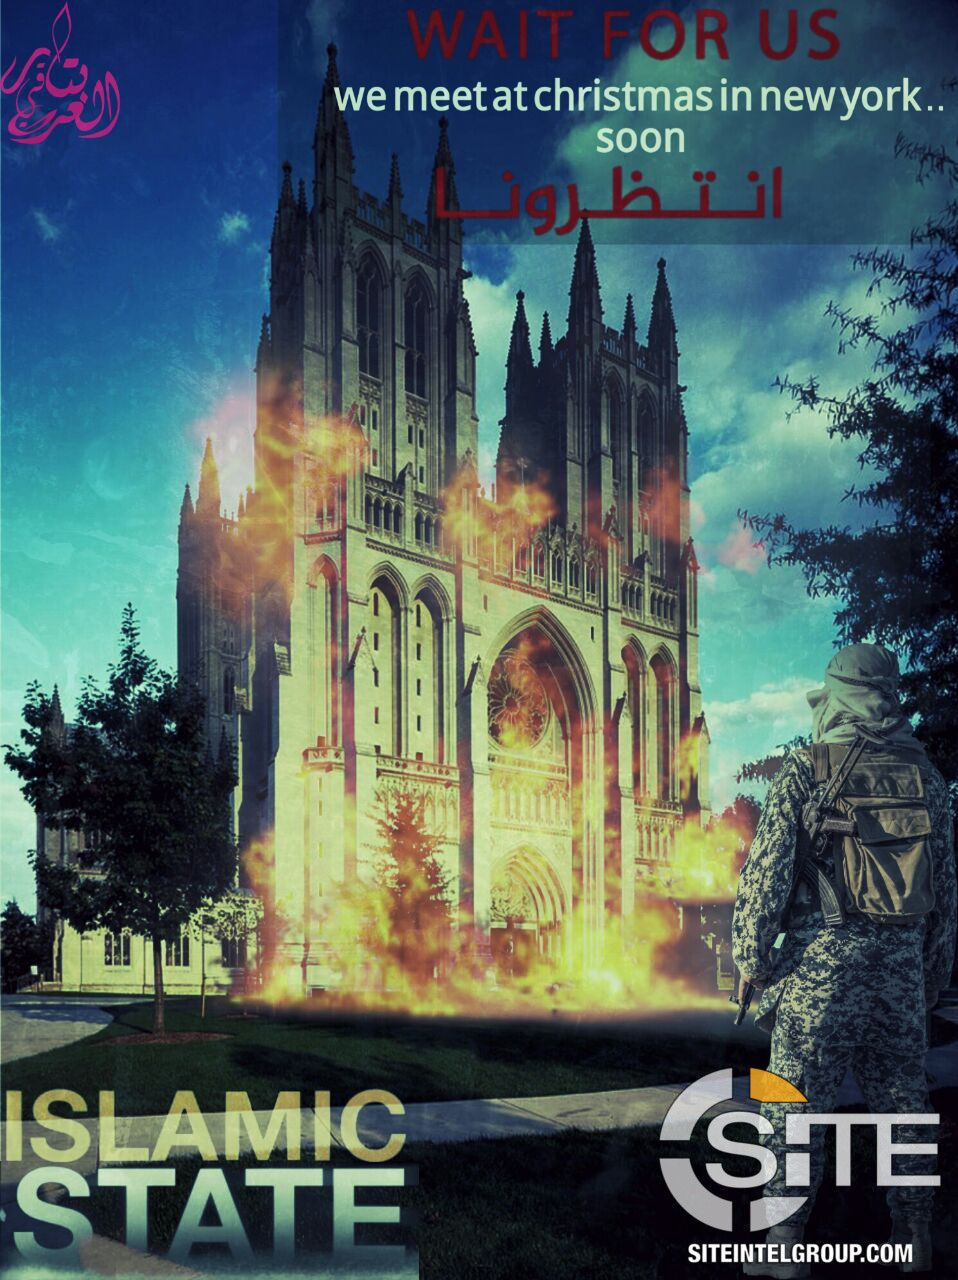 National Cathedral Christmas 2019 Will ISIS Attack Washington D.C. Or New York On Christmas